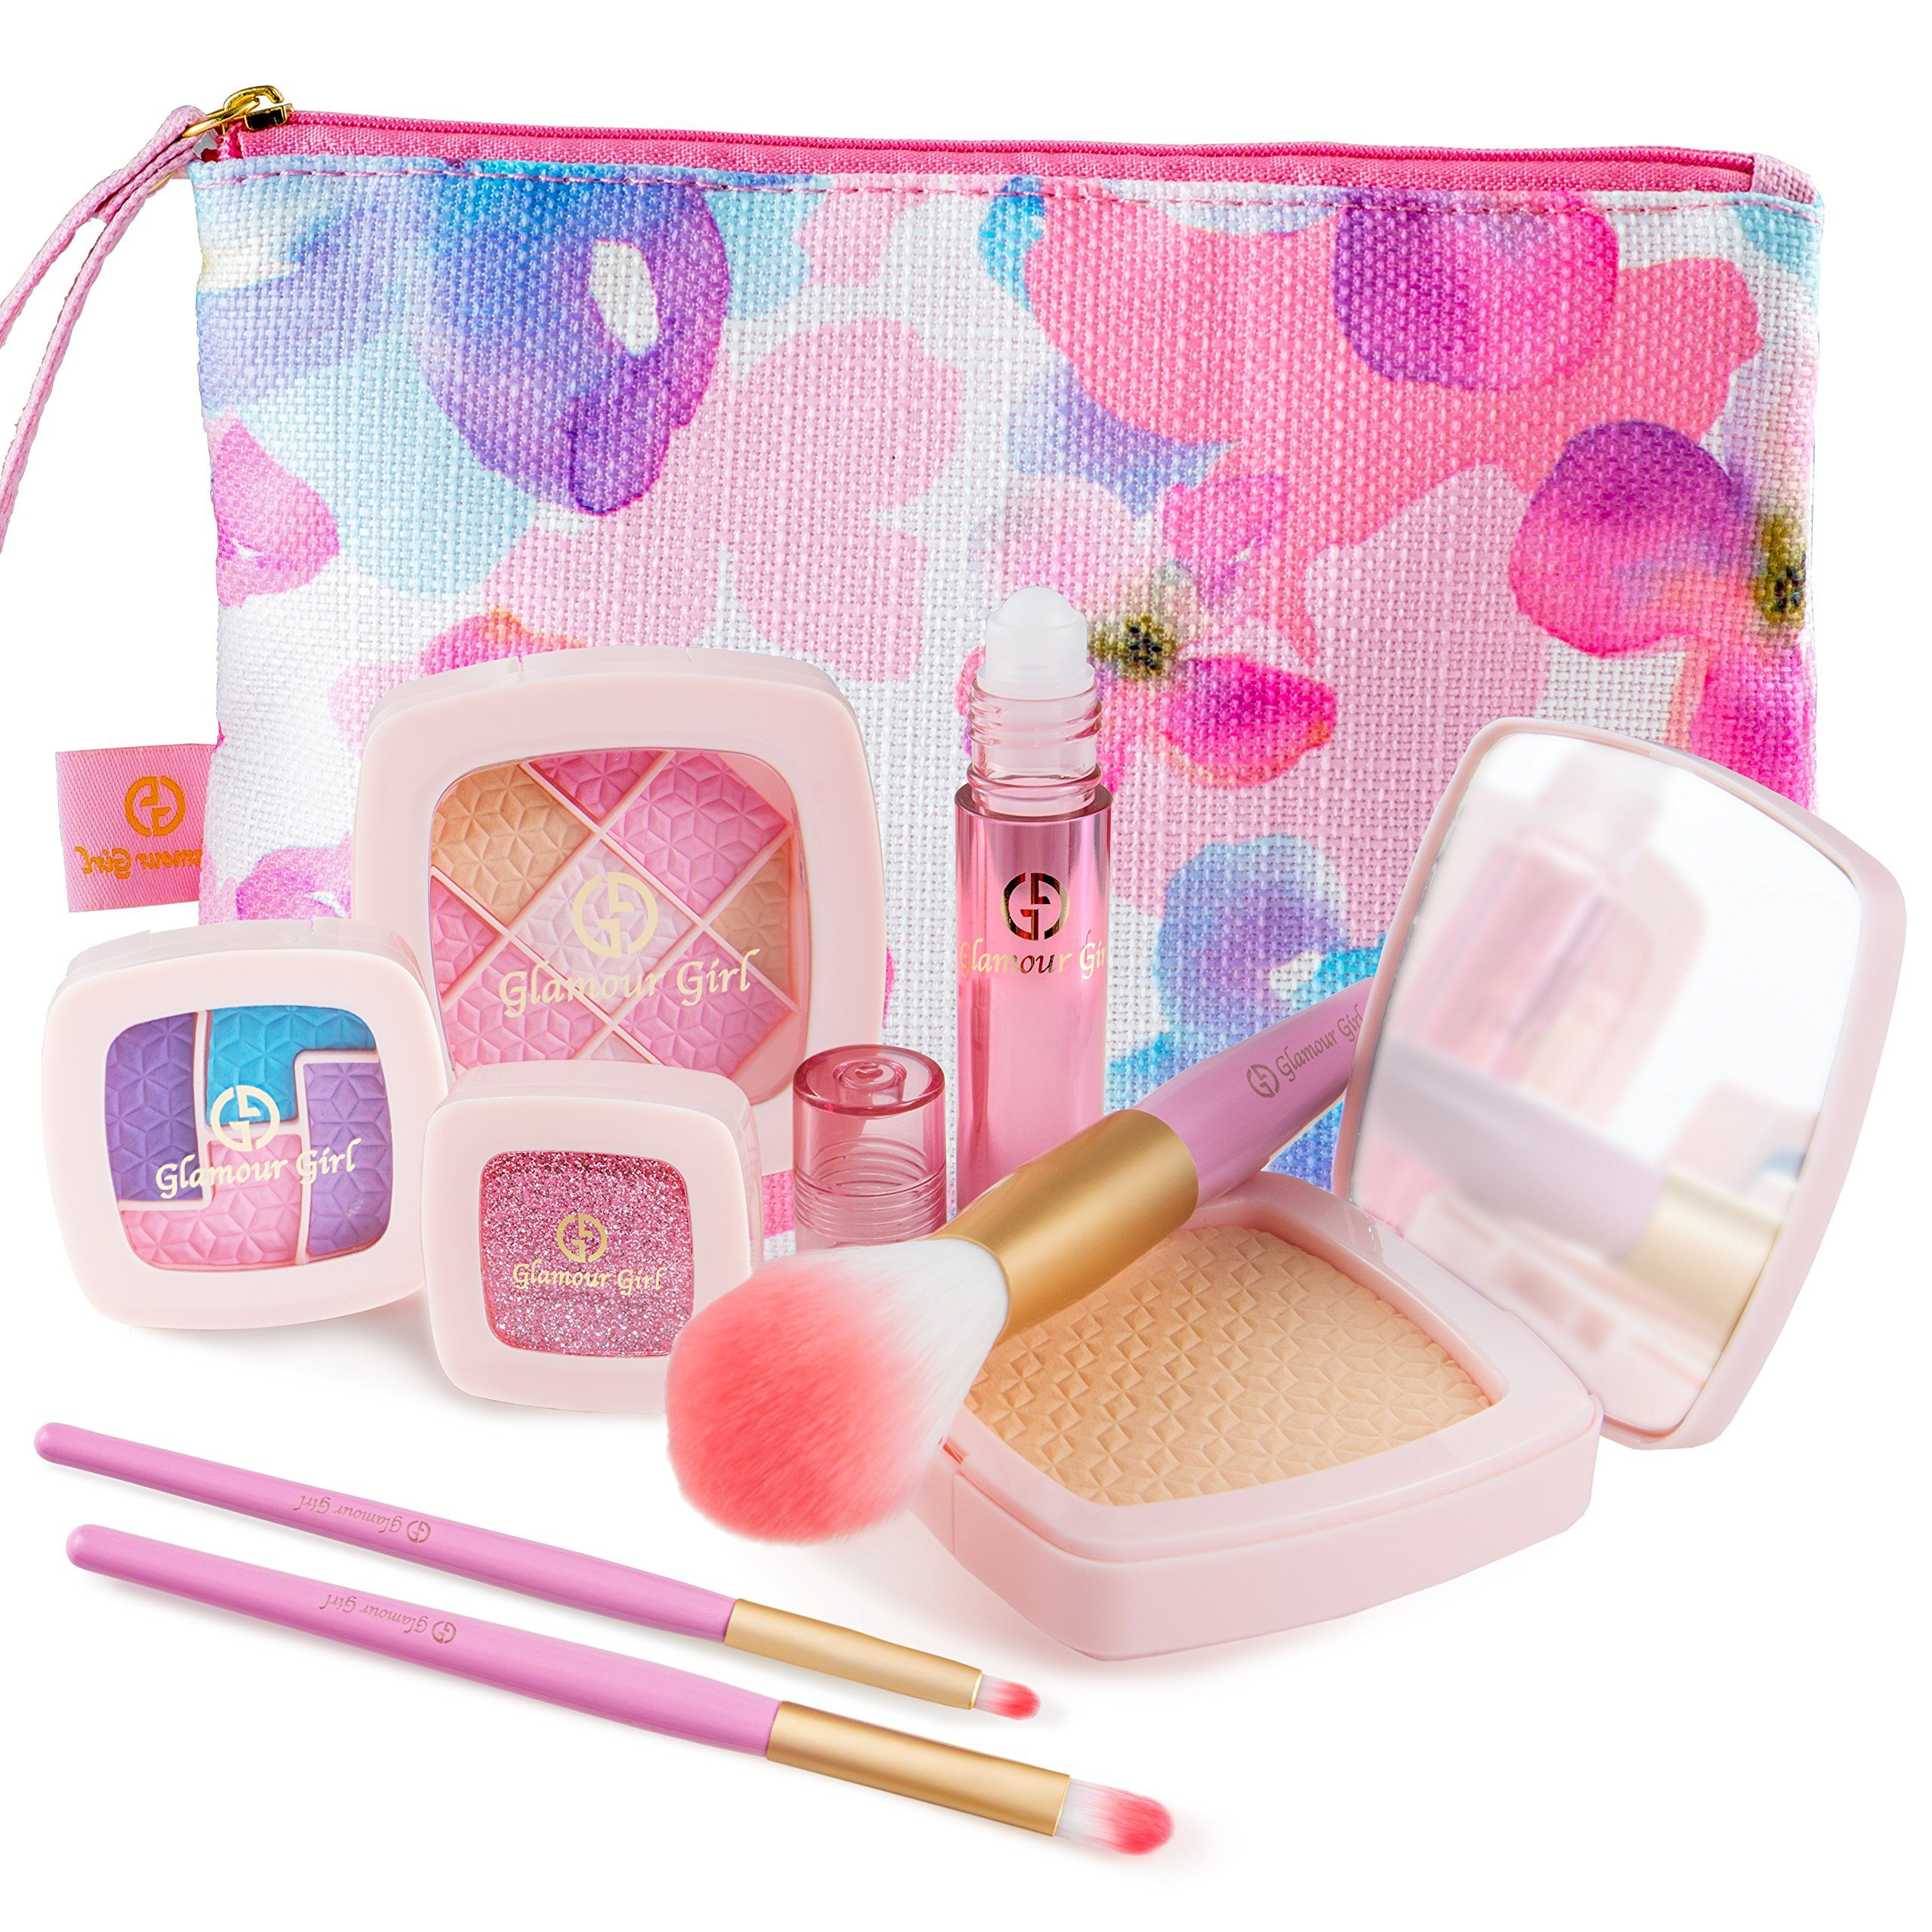 Toys For 2 And Up : Amazon makeup set for children by glamour girl